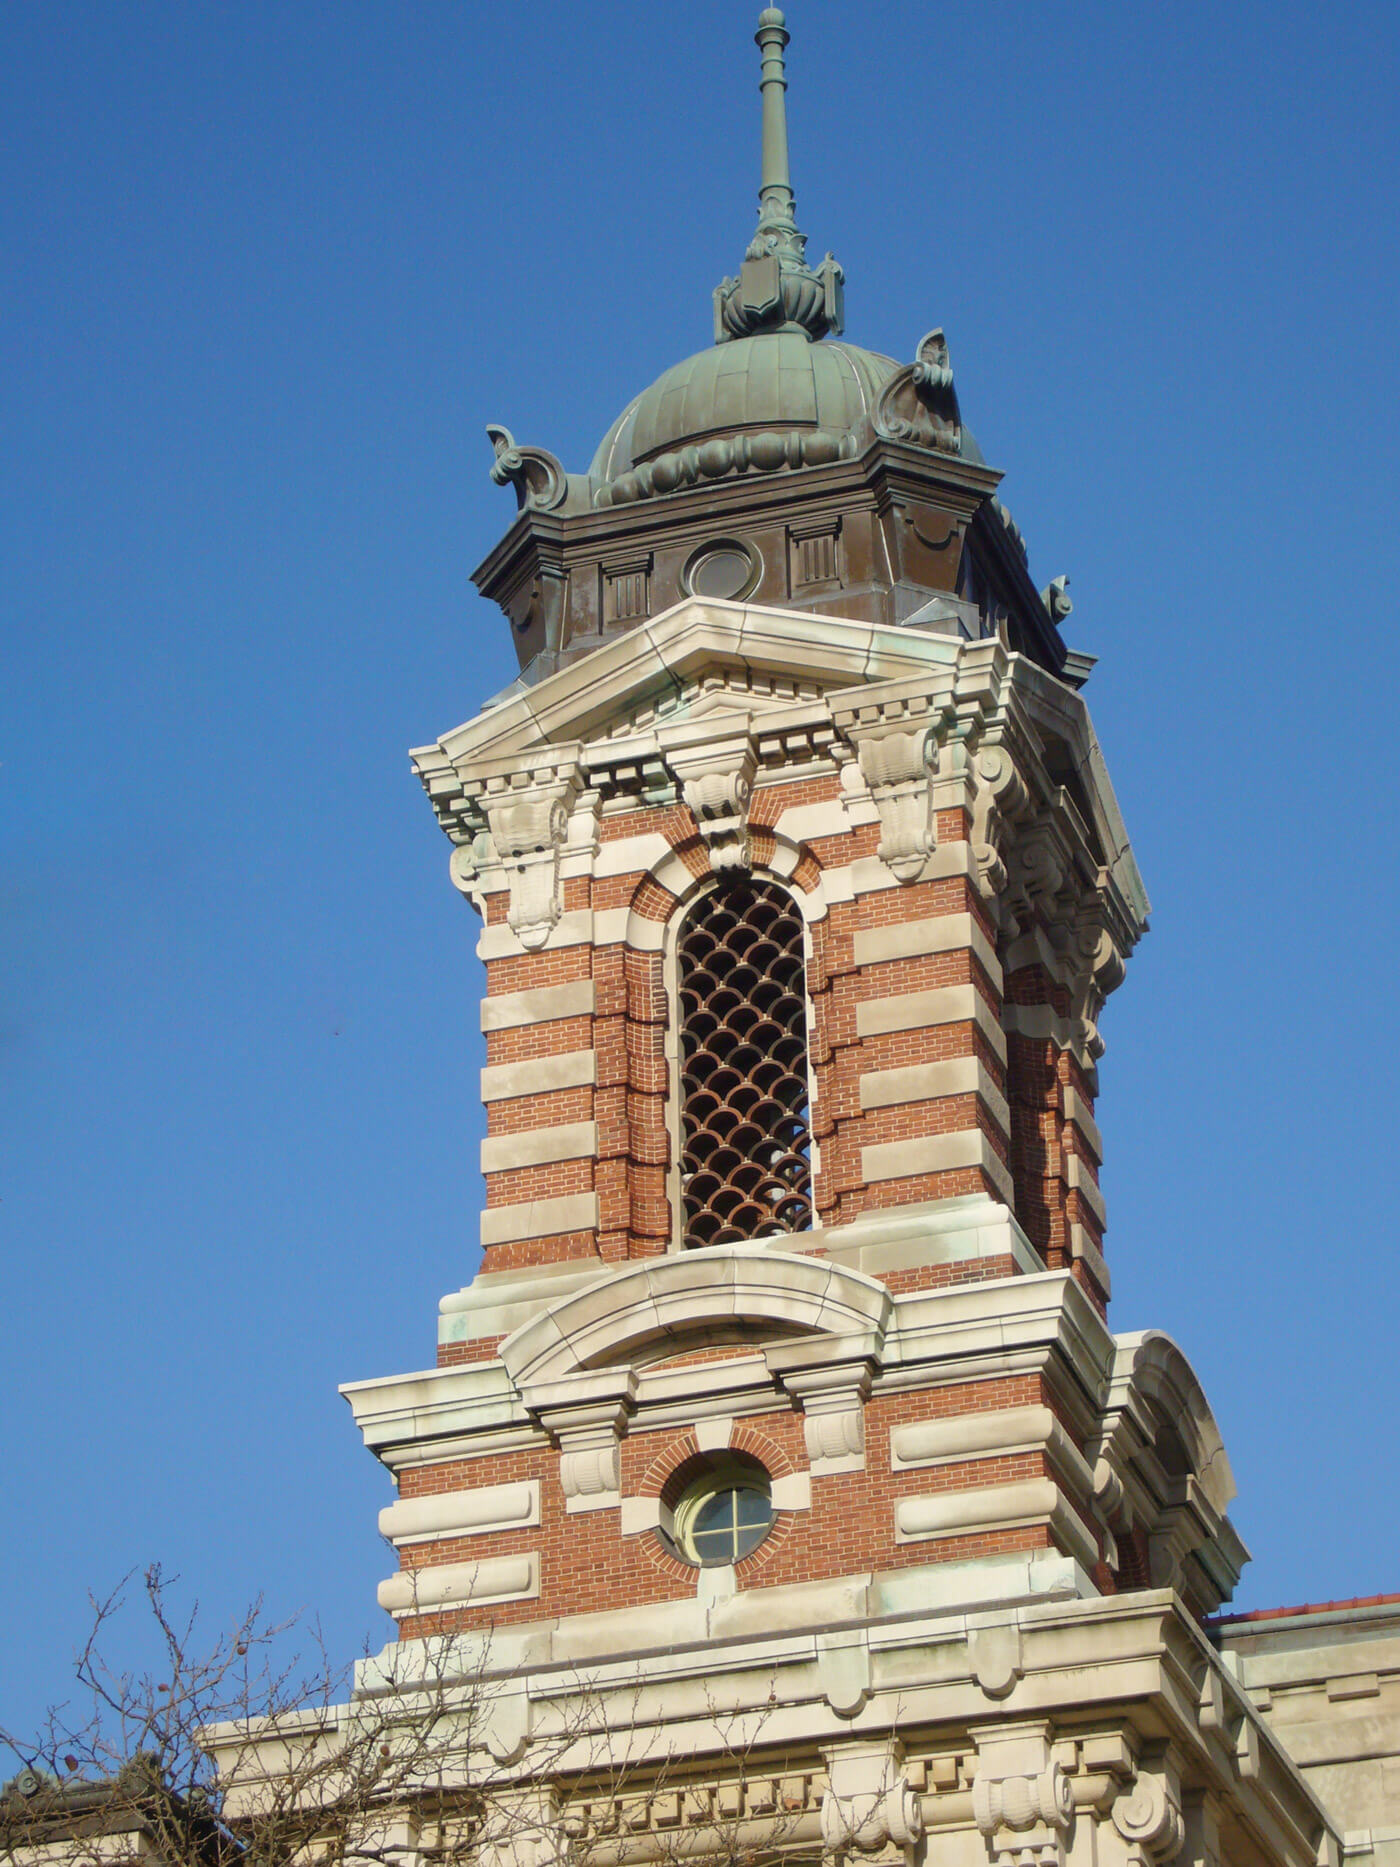 Brick and stone striped detailing on Ellis Island tower with copper roof.